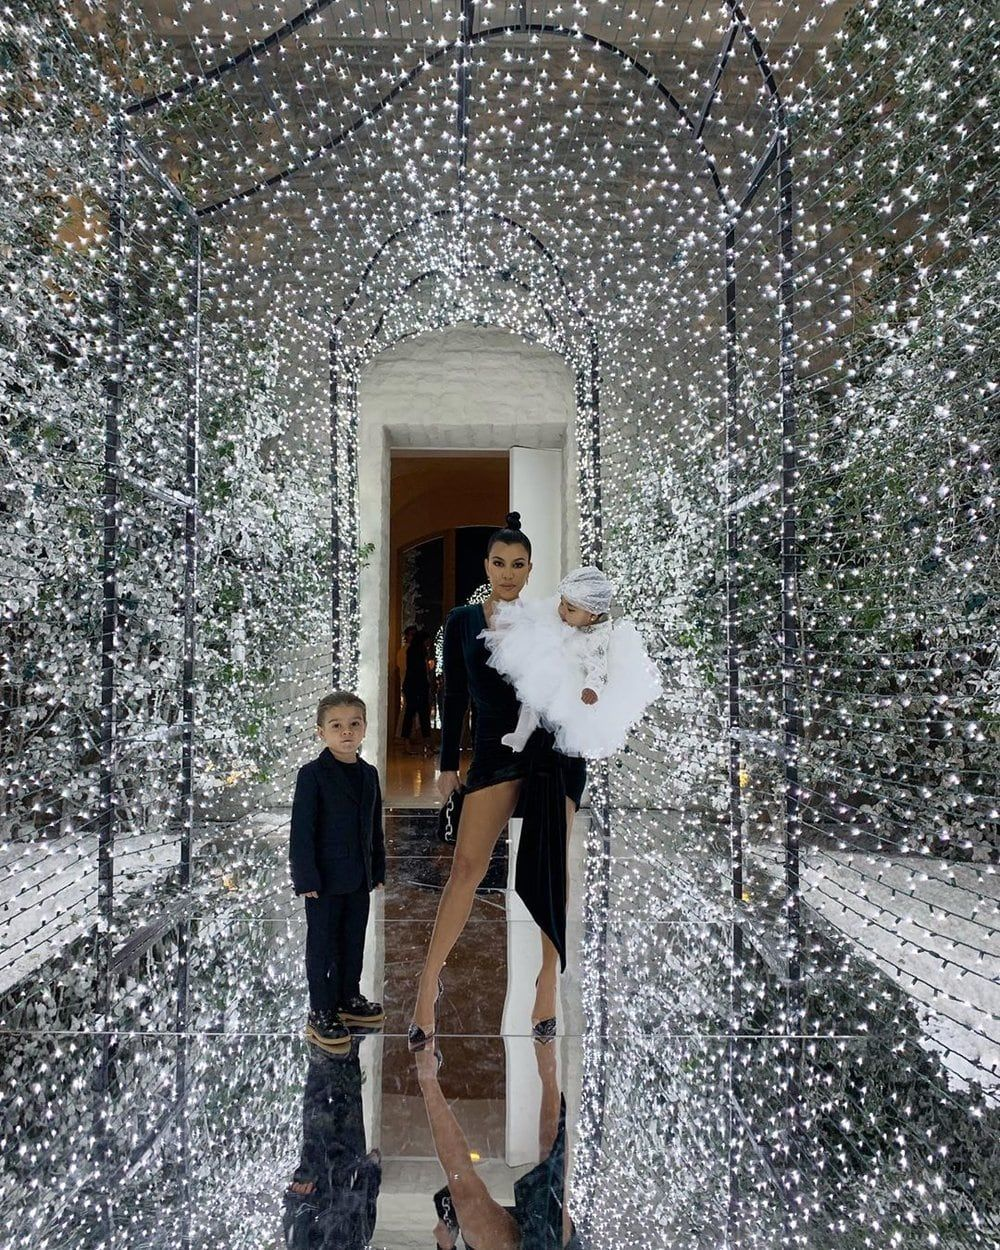 Kim Kardashian Christmas Party 2018.Kim Kardashian Hosts The Annual Kardashian Christmas Eve